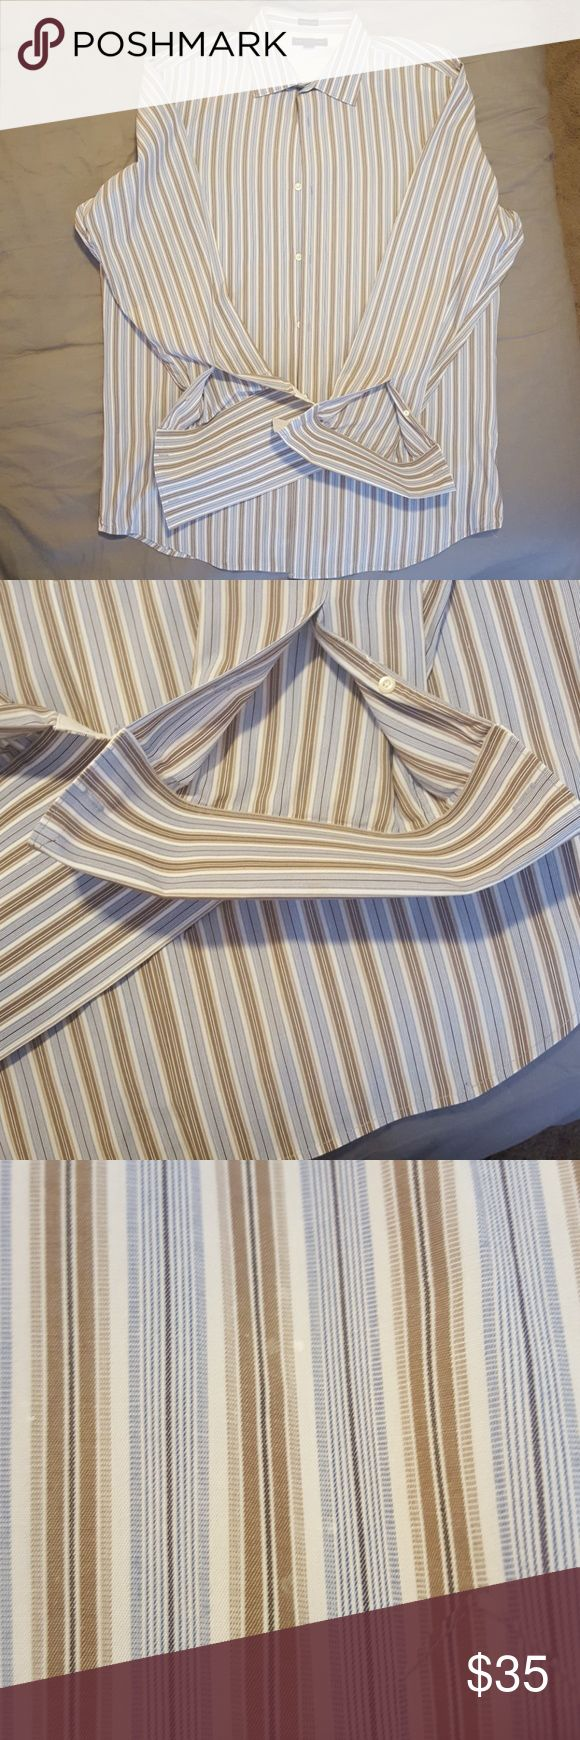 Banana Republic dress shirt EUC practically brand new Banana Republic men's dress shirt. Only ever dry cleaned. Has holes for cufflinks on sleeves. Size XL 17-17.5 Few starch dots from drycleaner if you look closely, but won't see them is you're not looking (see pic 3 &4). Great with solid tie! Dress up or dress down. (Tie not included) Banana Republic Shirts Dress Shirts